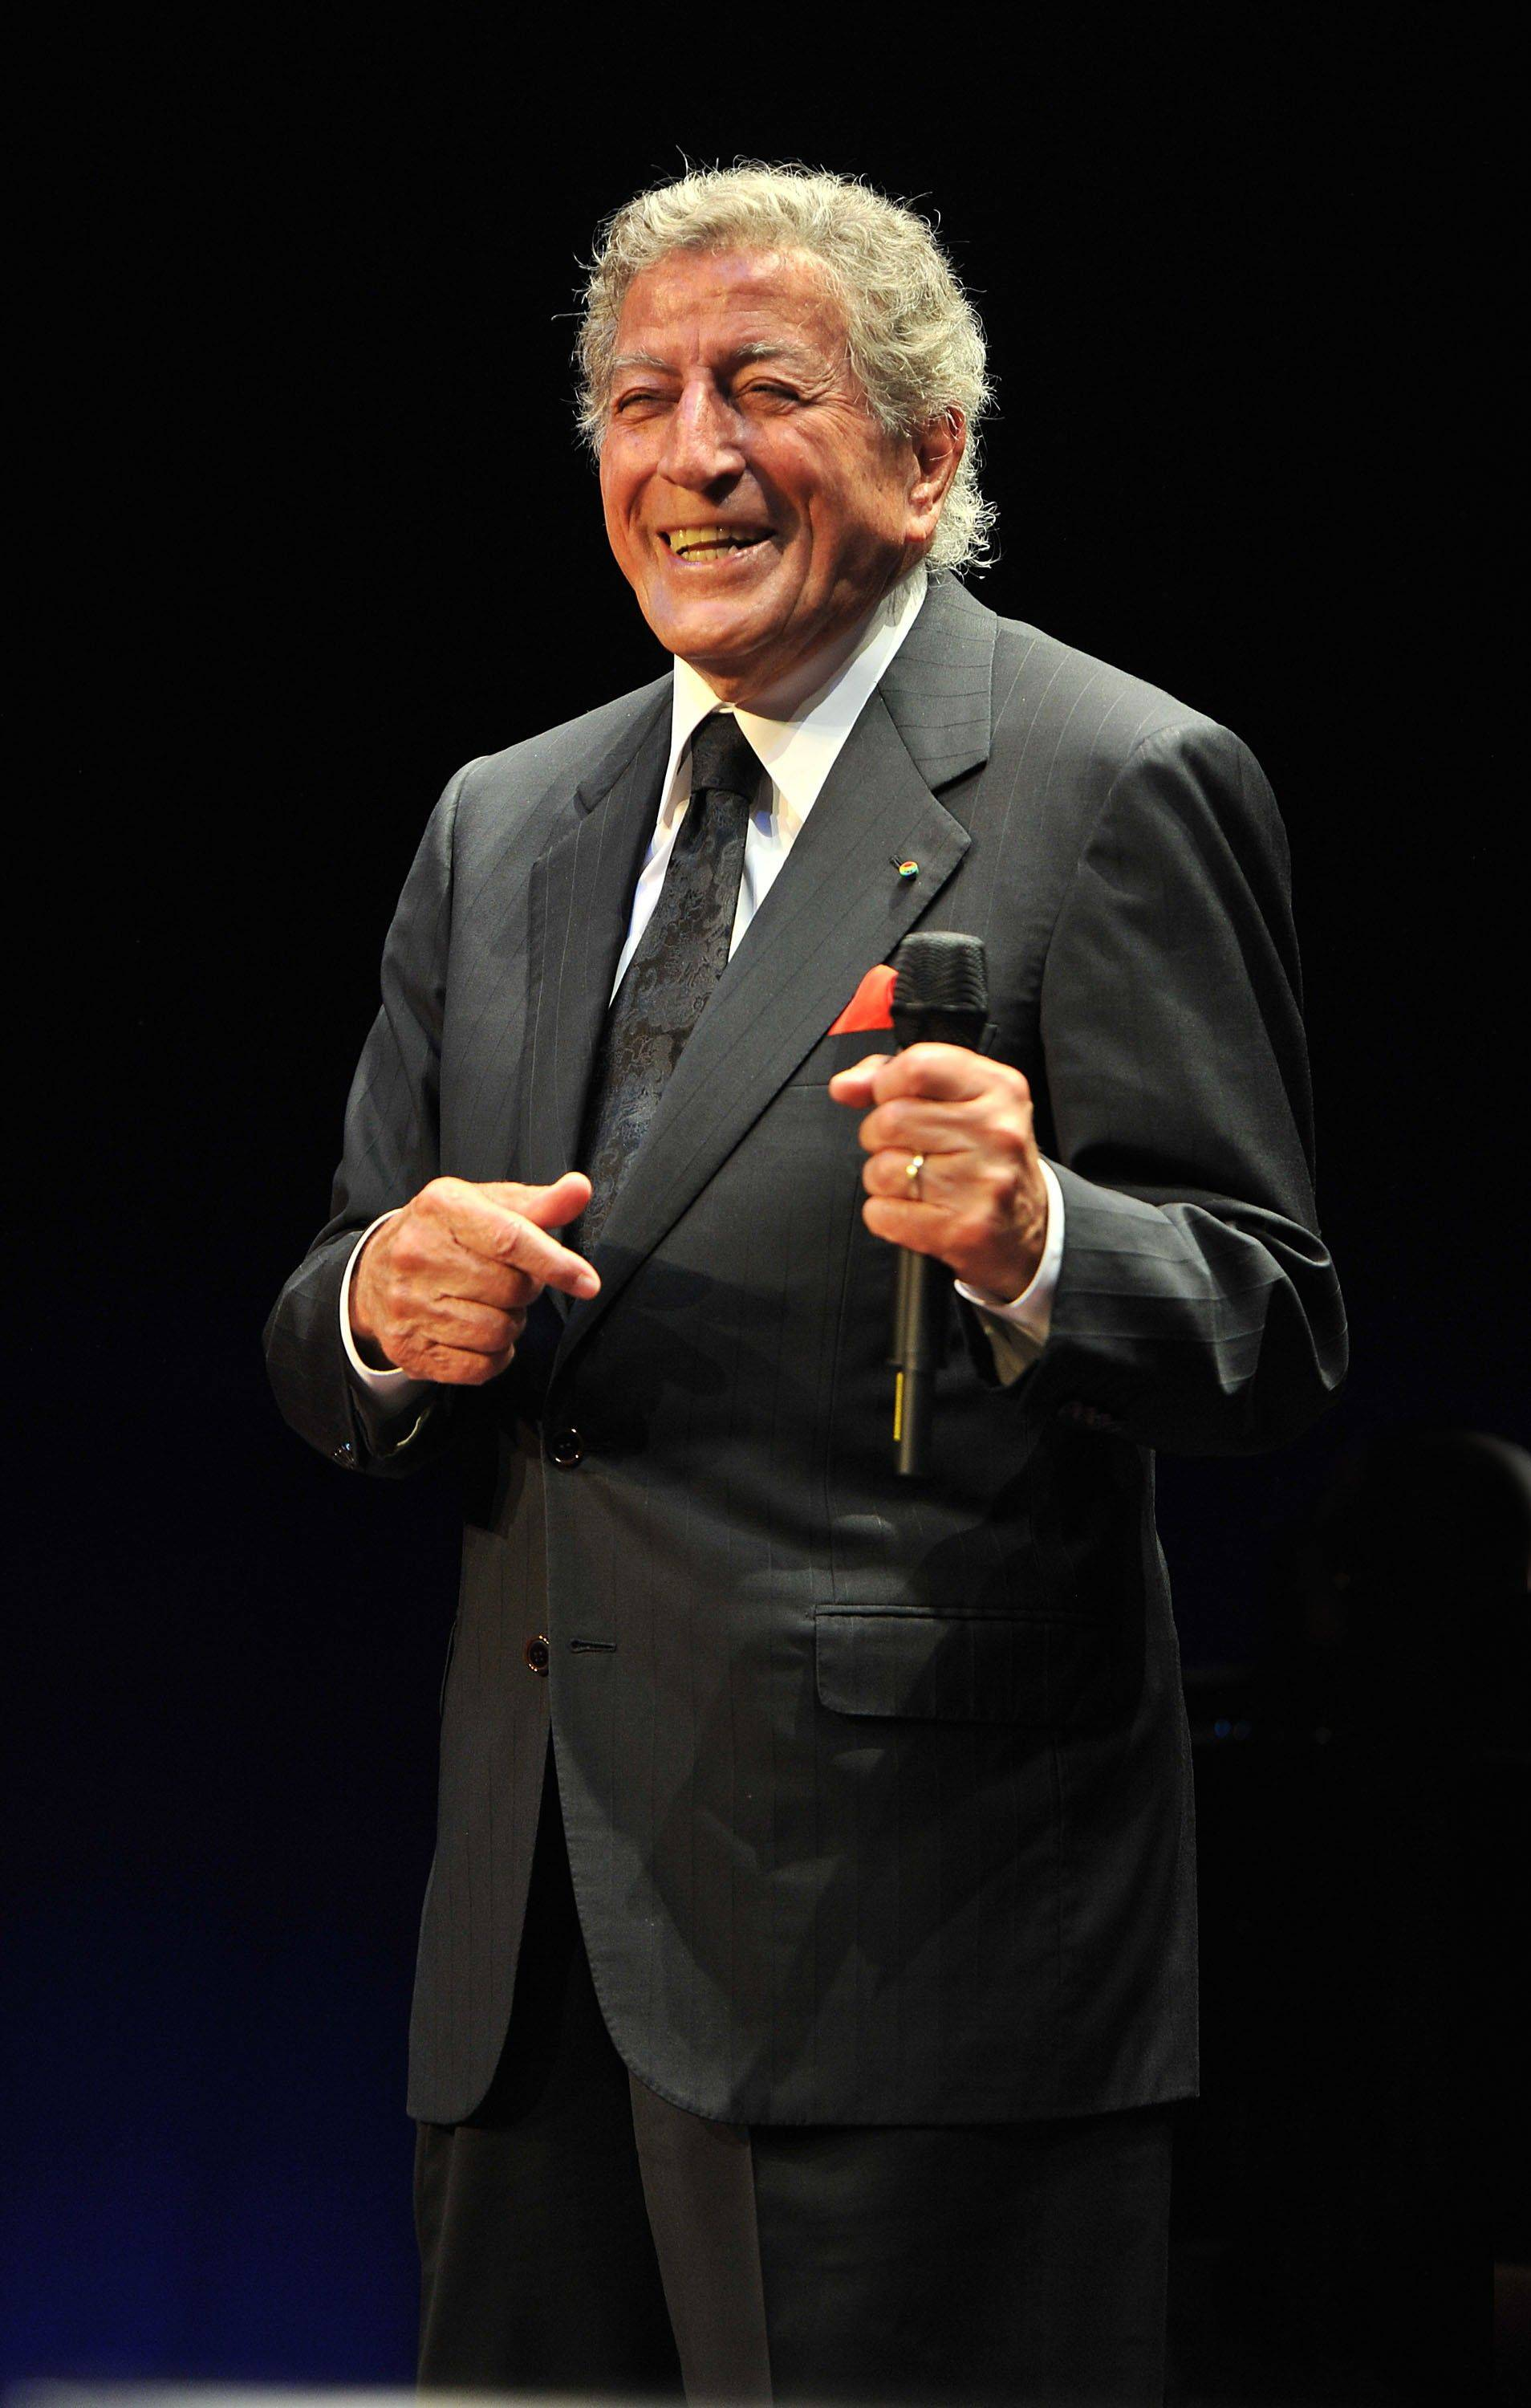 Tony Bennett performs an 85th Birthday Concert at the Ravinia Festival in Highland Park.